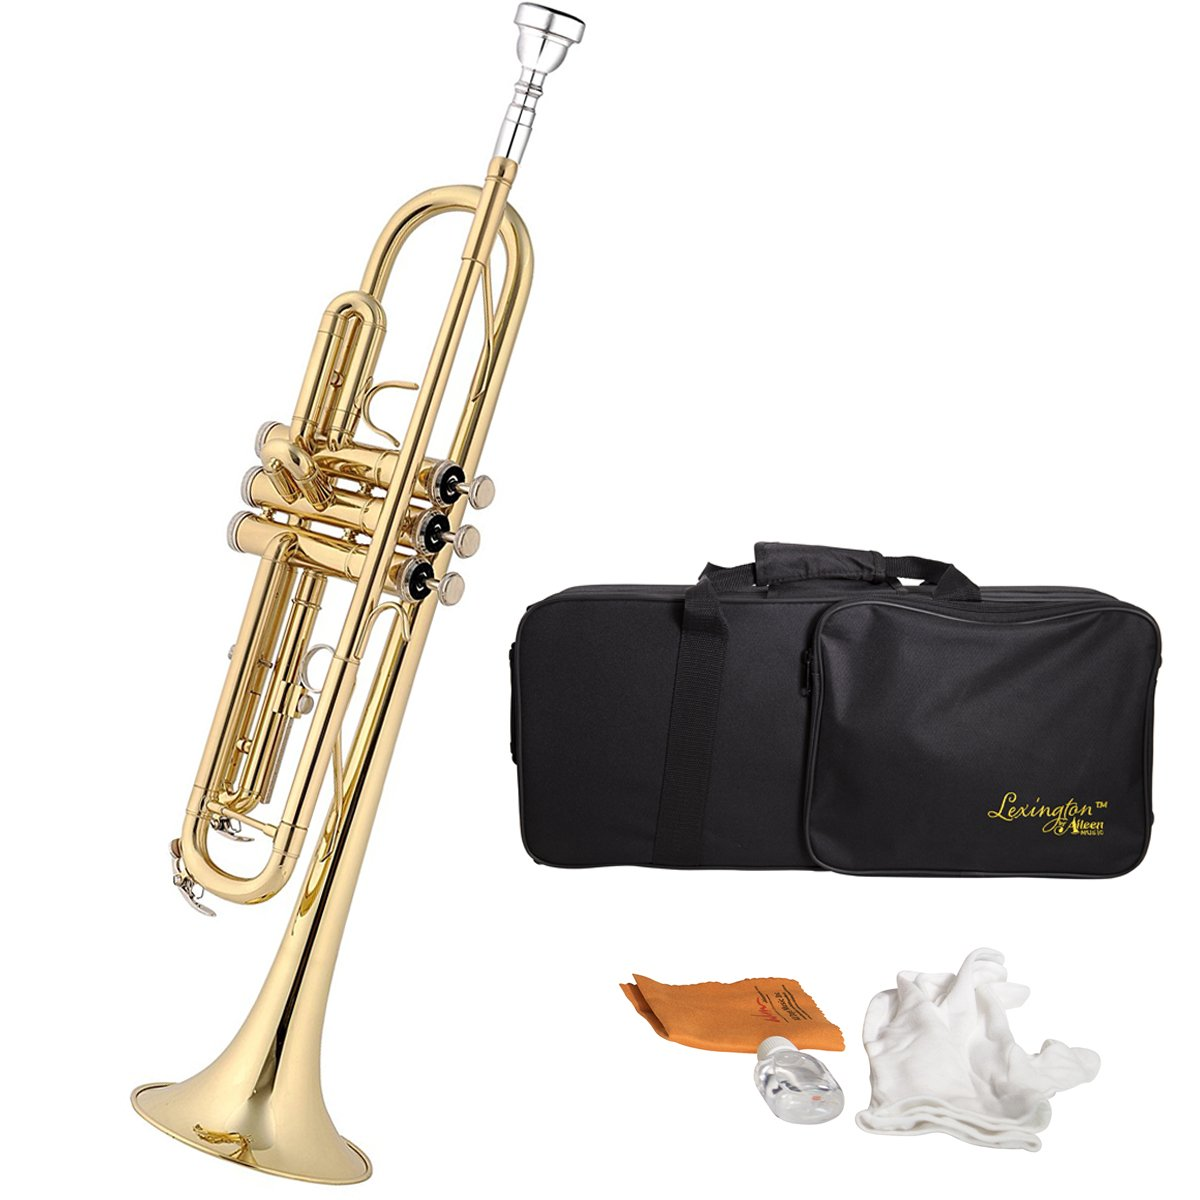 Lexington Brass Lacquered Bb Key Student Intermediate Trumpet with Full Accessories and Kit